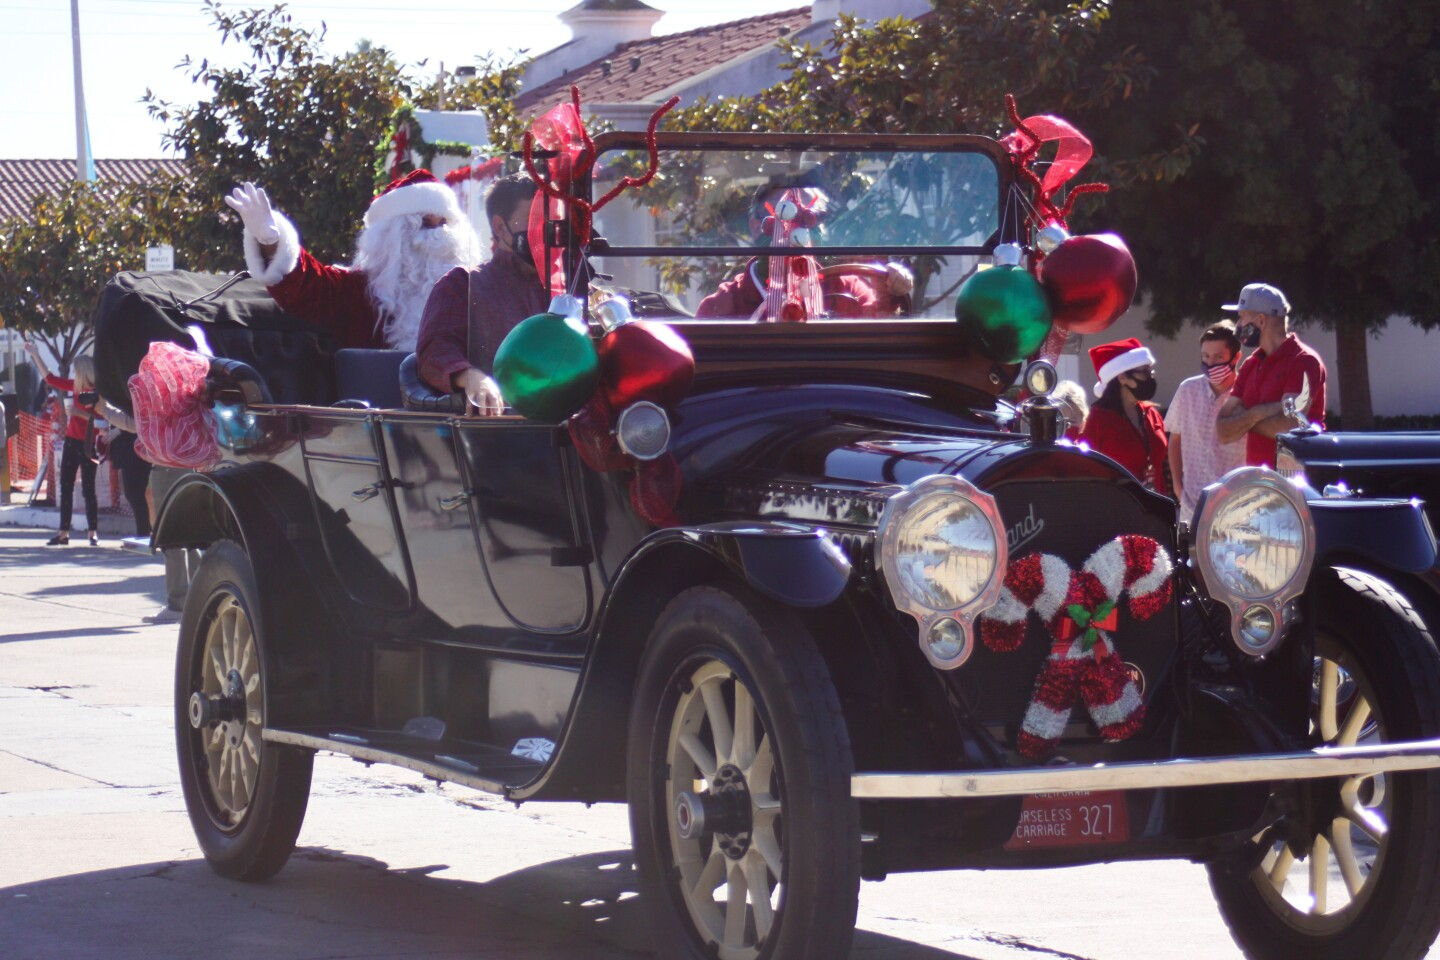 Santa Claus makes his entrance in the Old Black Goose as part of the La Jolla Christmas Parade festivities Dec. 6.